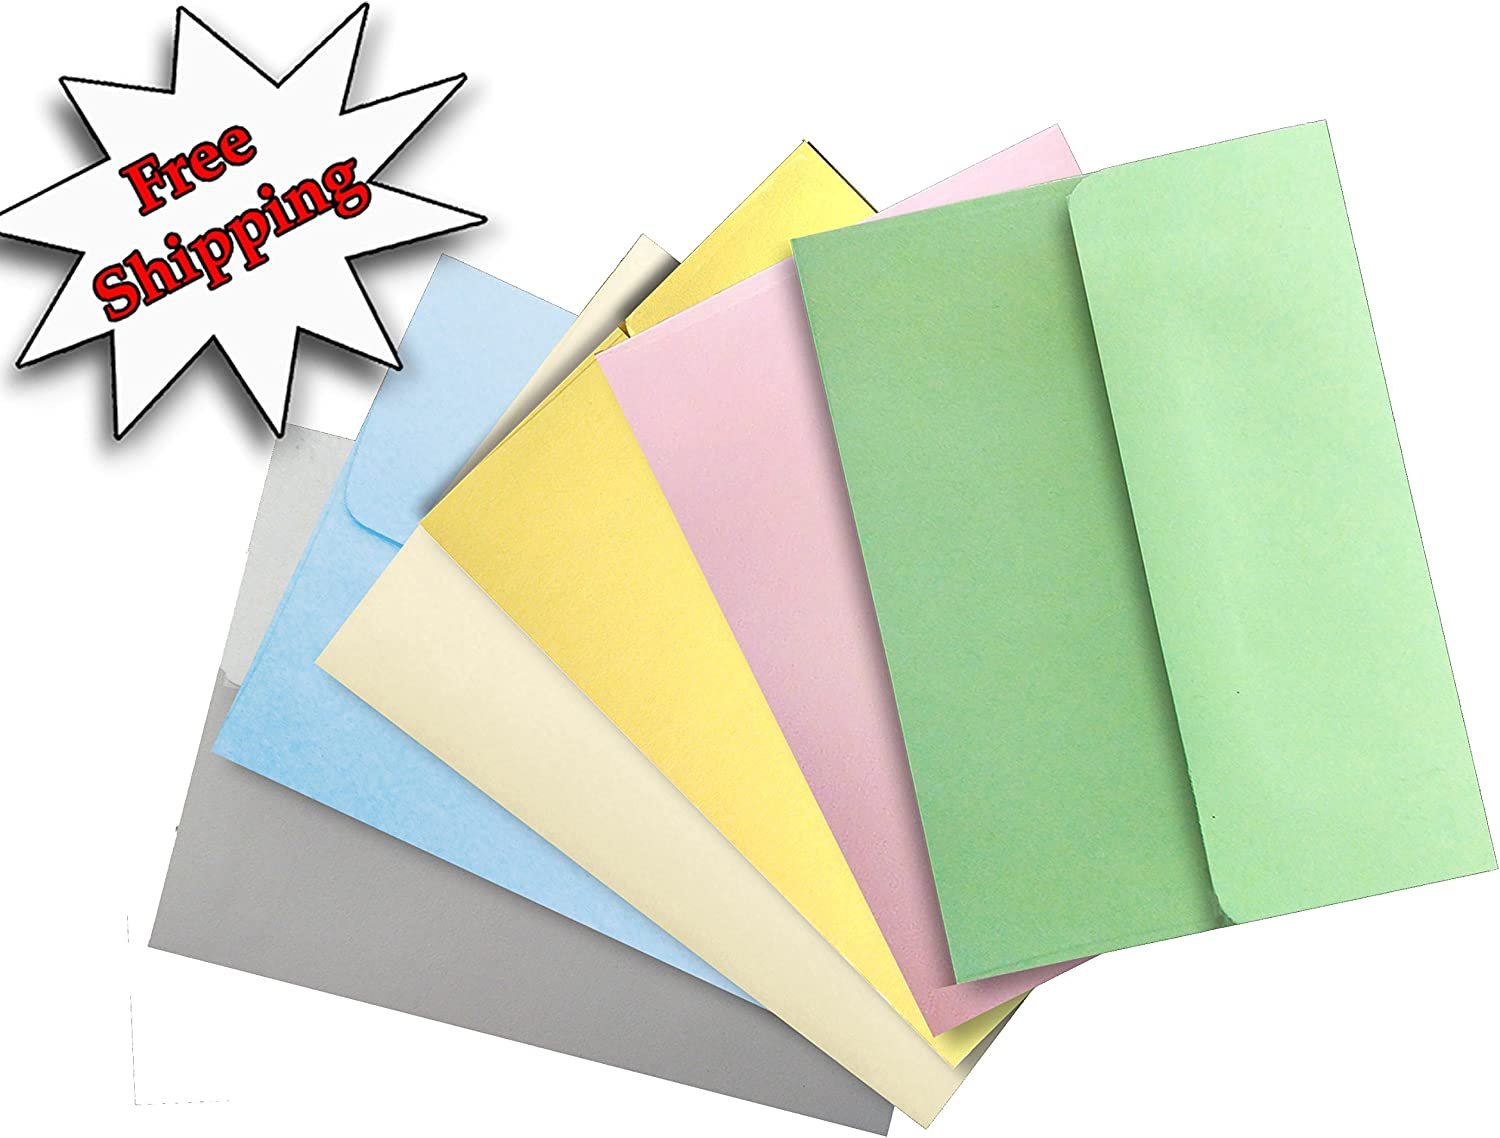 Shipped Free Pastel Color Selection 50 Boxed A2 4-3//8 x 5-3//4 Envelopes for Enclosures Cards Invitations Announcements from The Envelope Gallery